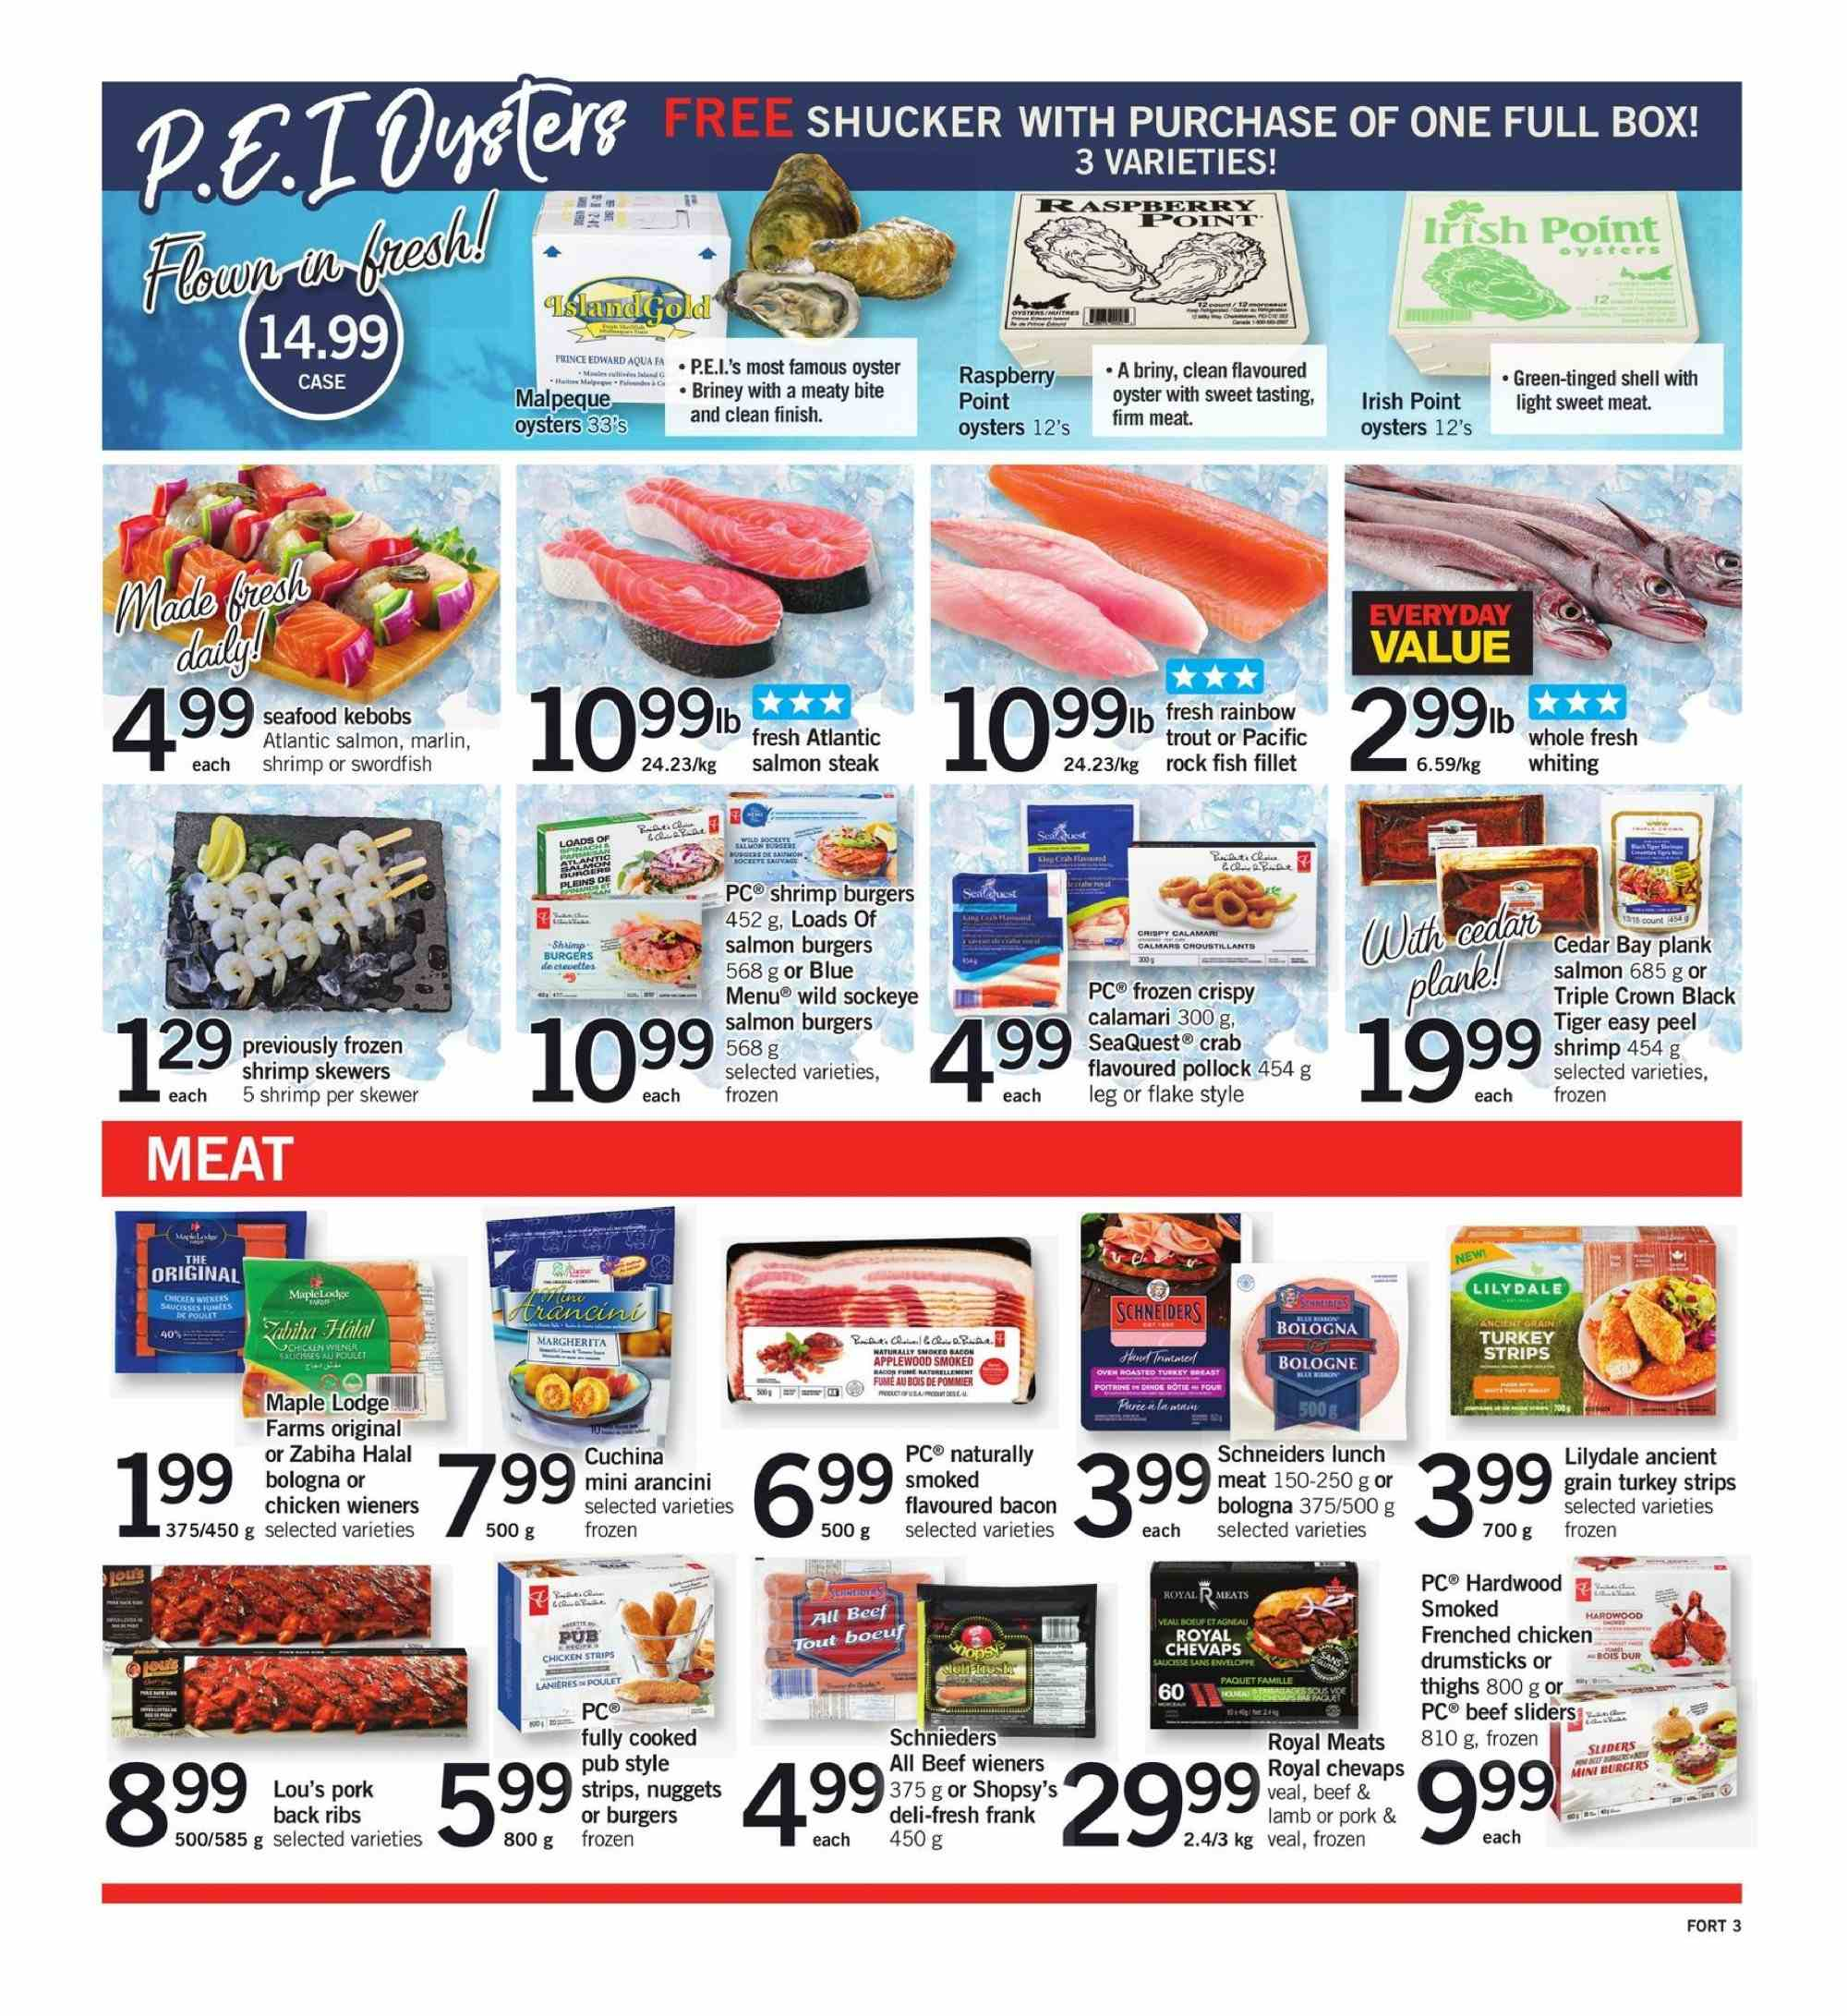 Fortinos Flyer  - August 30, 2018 - September 05, 2018. Page 3.